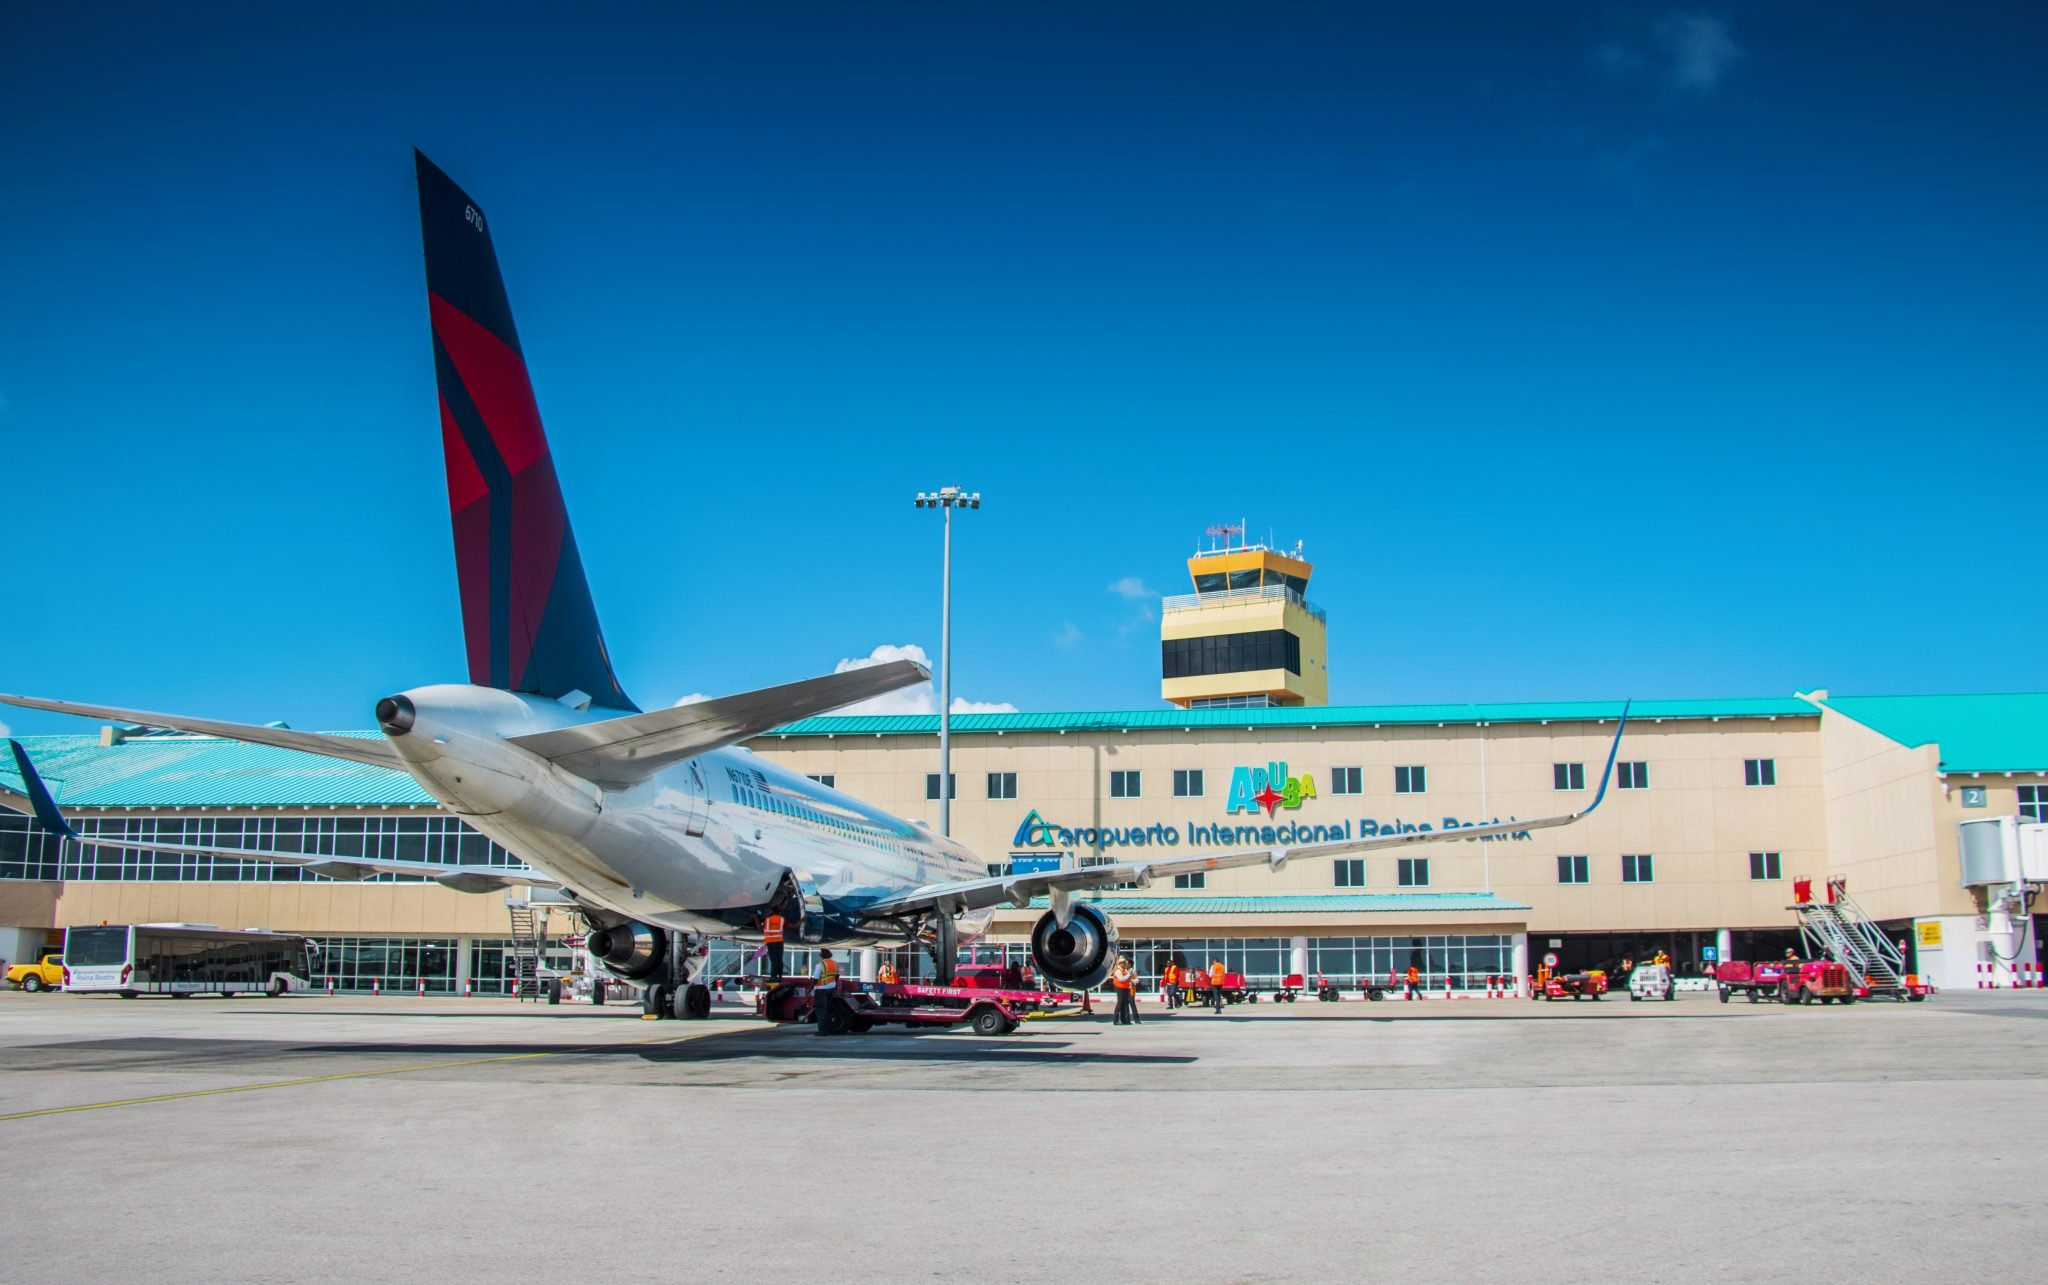 Delta Airlines at Aruba airport